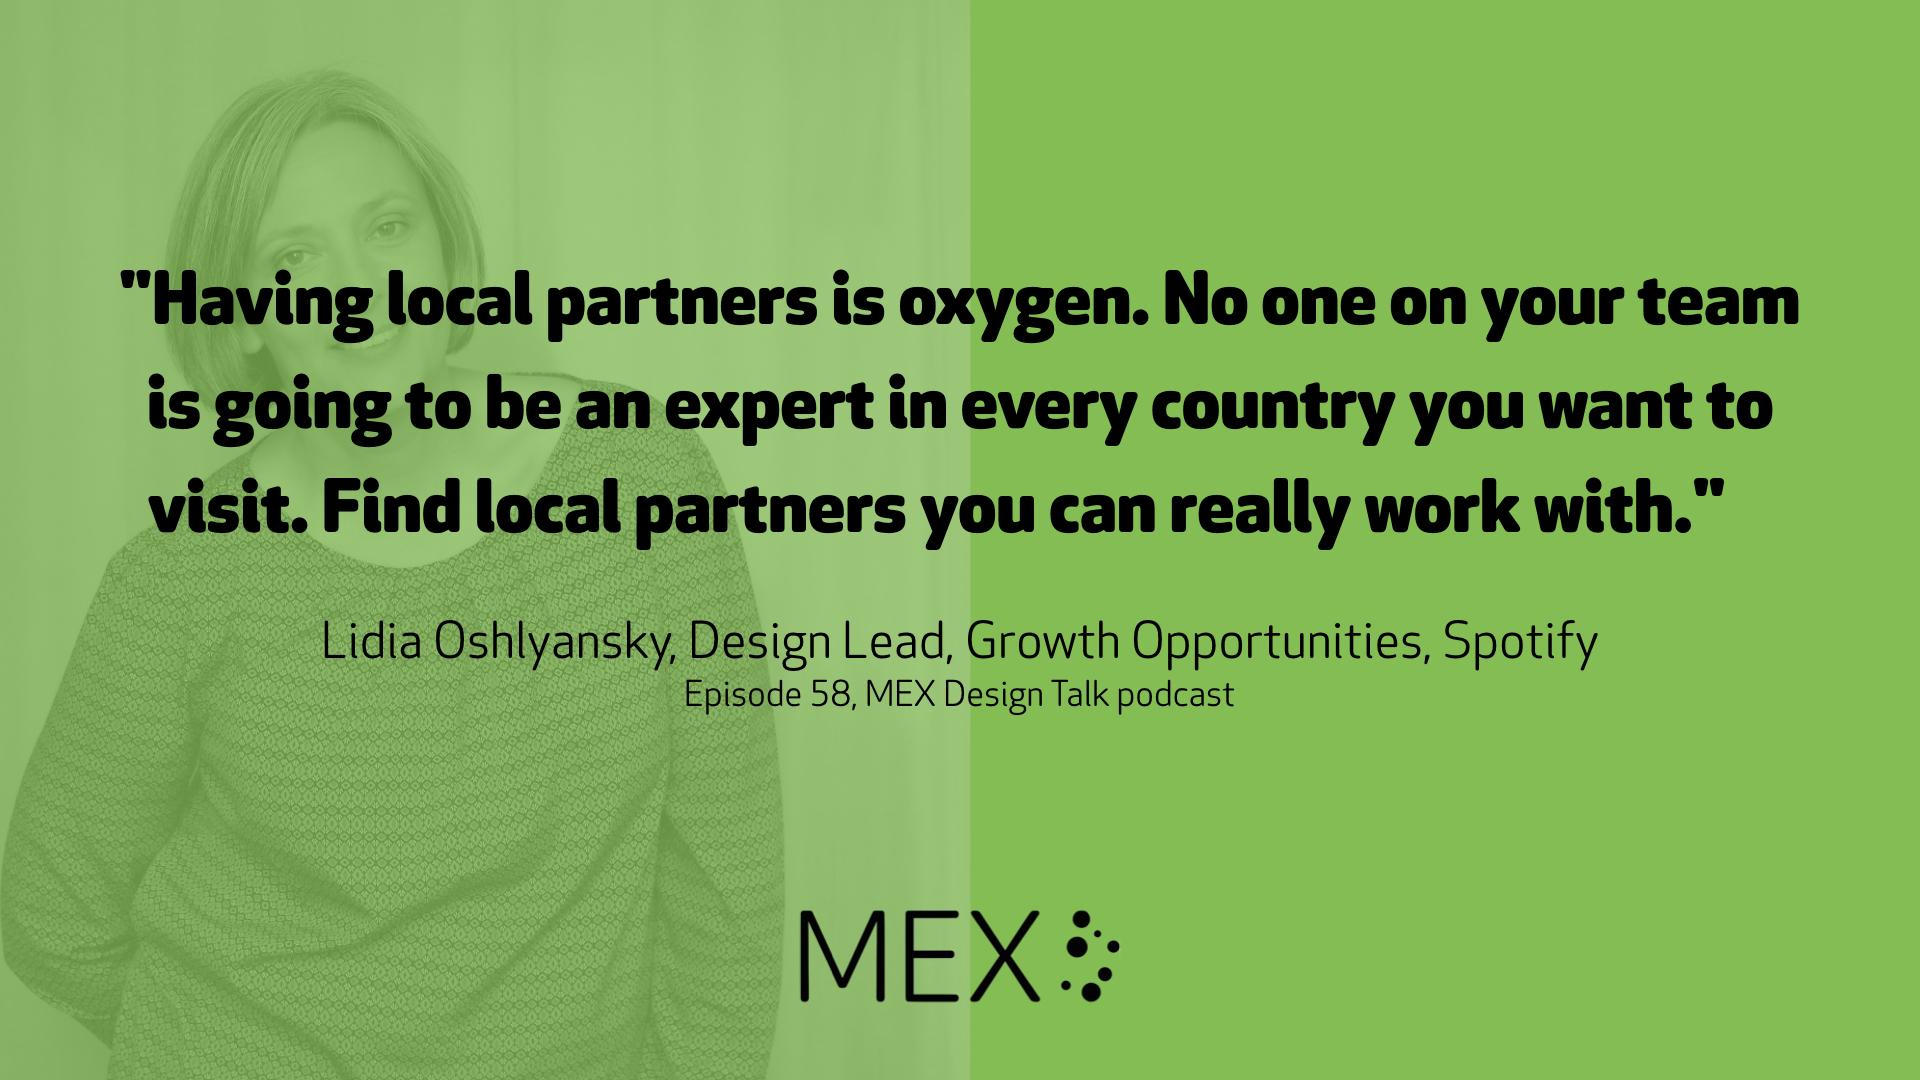 """Having local partners is oxygen. No one on your team is going to be an expert in every country you want to visit. Find local partners you can really work with.""	  Lidia Oshlyansky, Design Lead, Growth Opportunities, Spotify Episode 58, MEX Design Talk podcast"